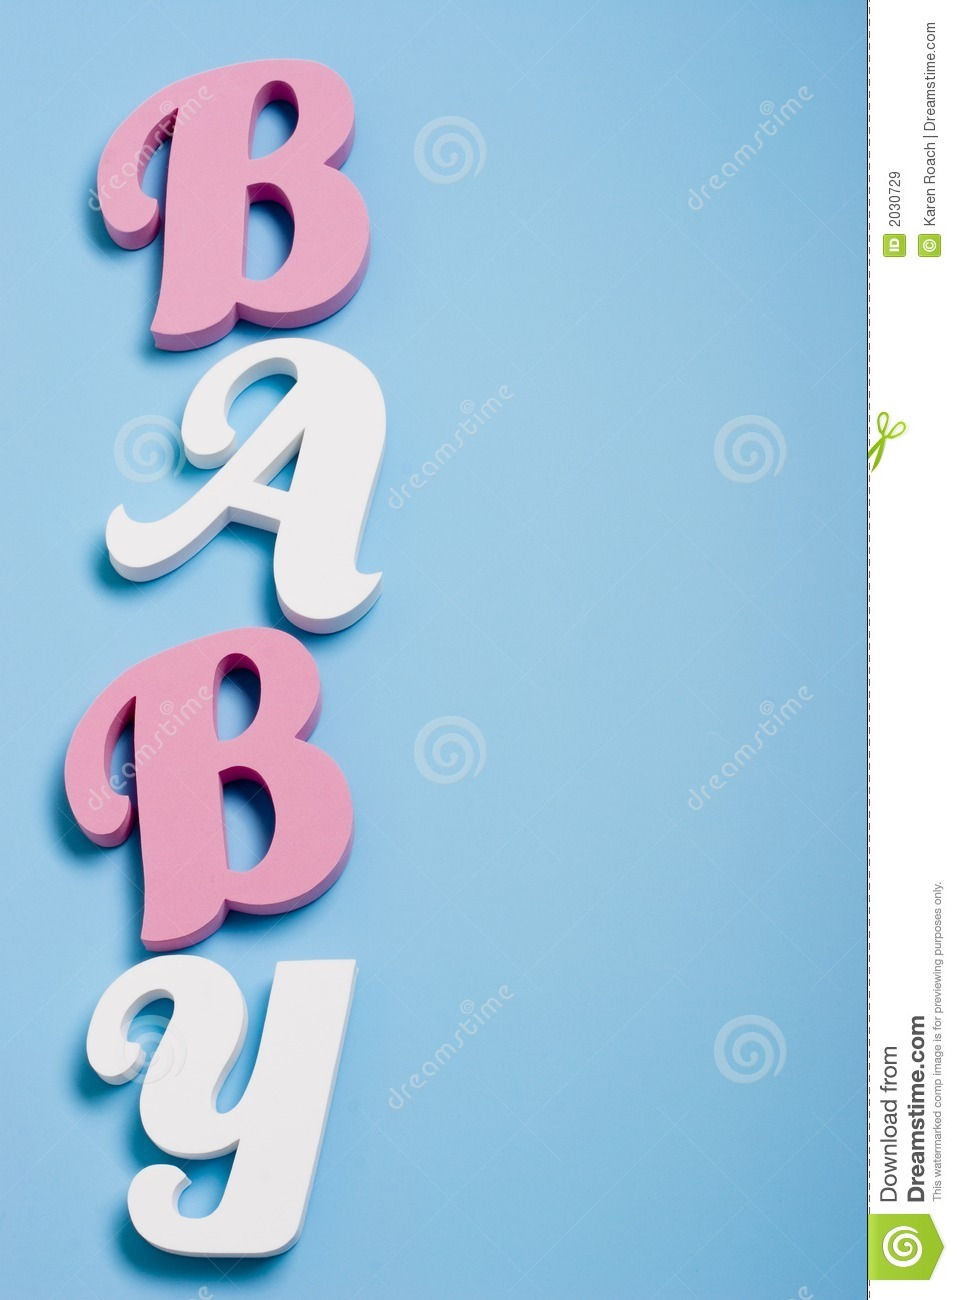 baby background stock image image of birth blue letters 2030729